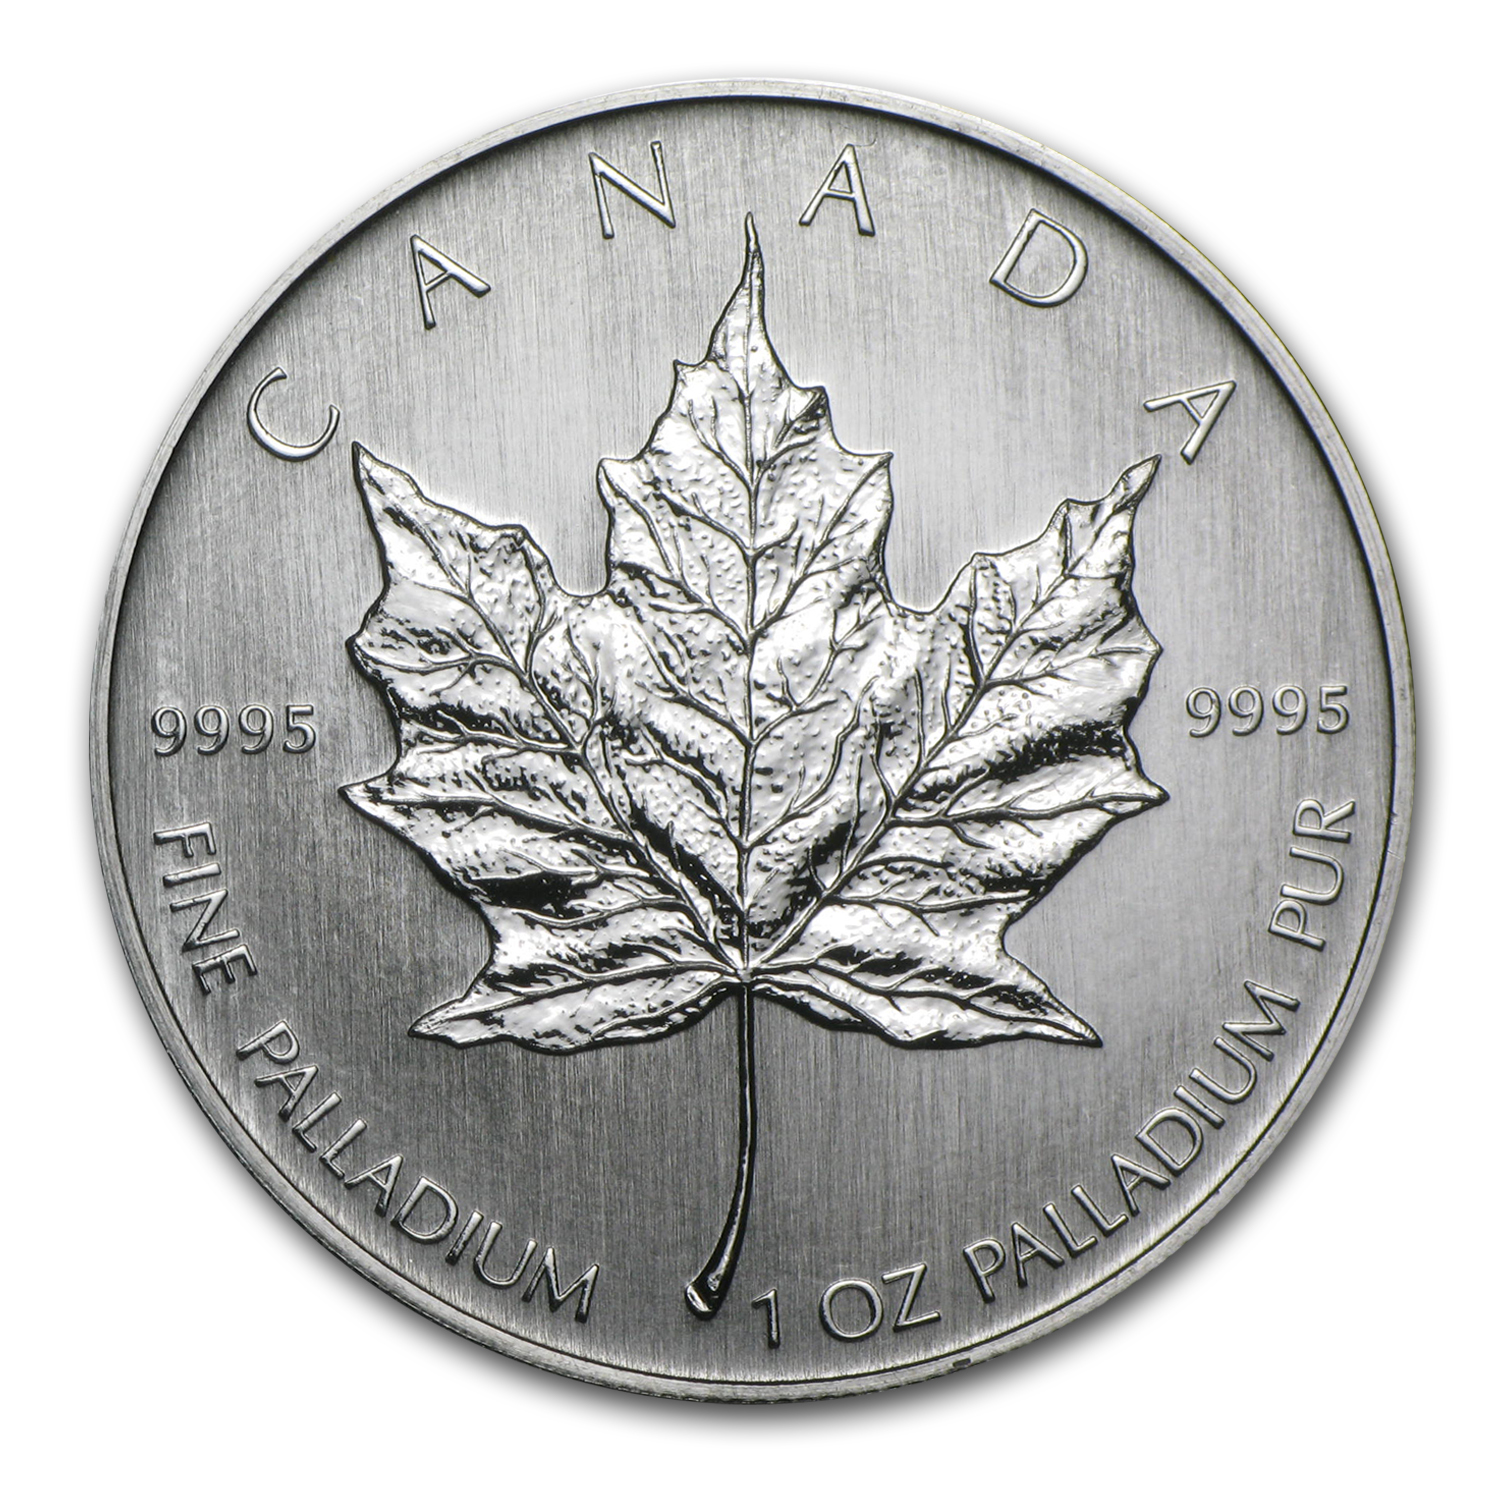 2005 1 oz Palladium Canadian Maple Leaf BU (Inaugural Issue)